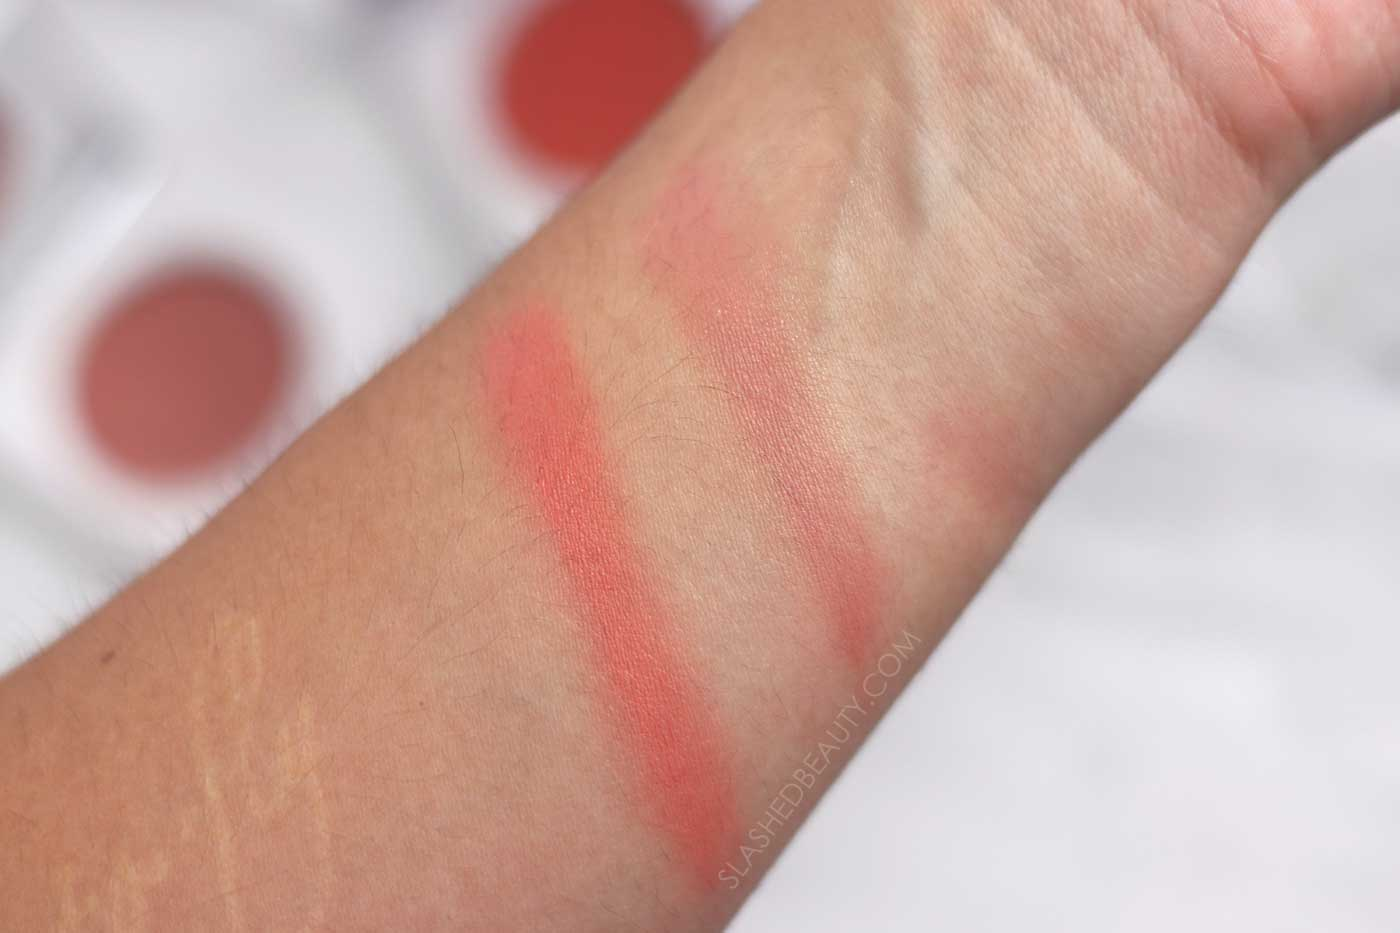 Honest Beauty Creme Cheek Blush Swatches | 5 Best Honest Beauty Products | Slashed Beauty